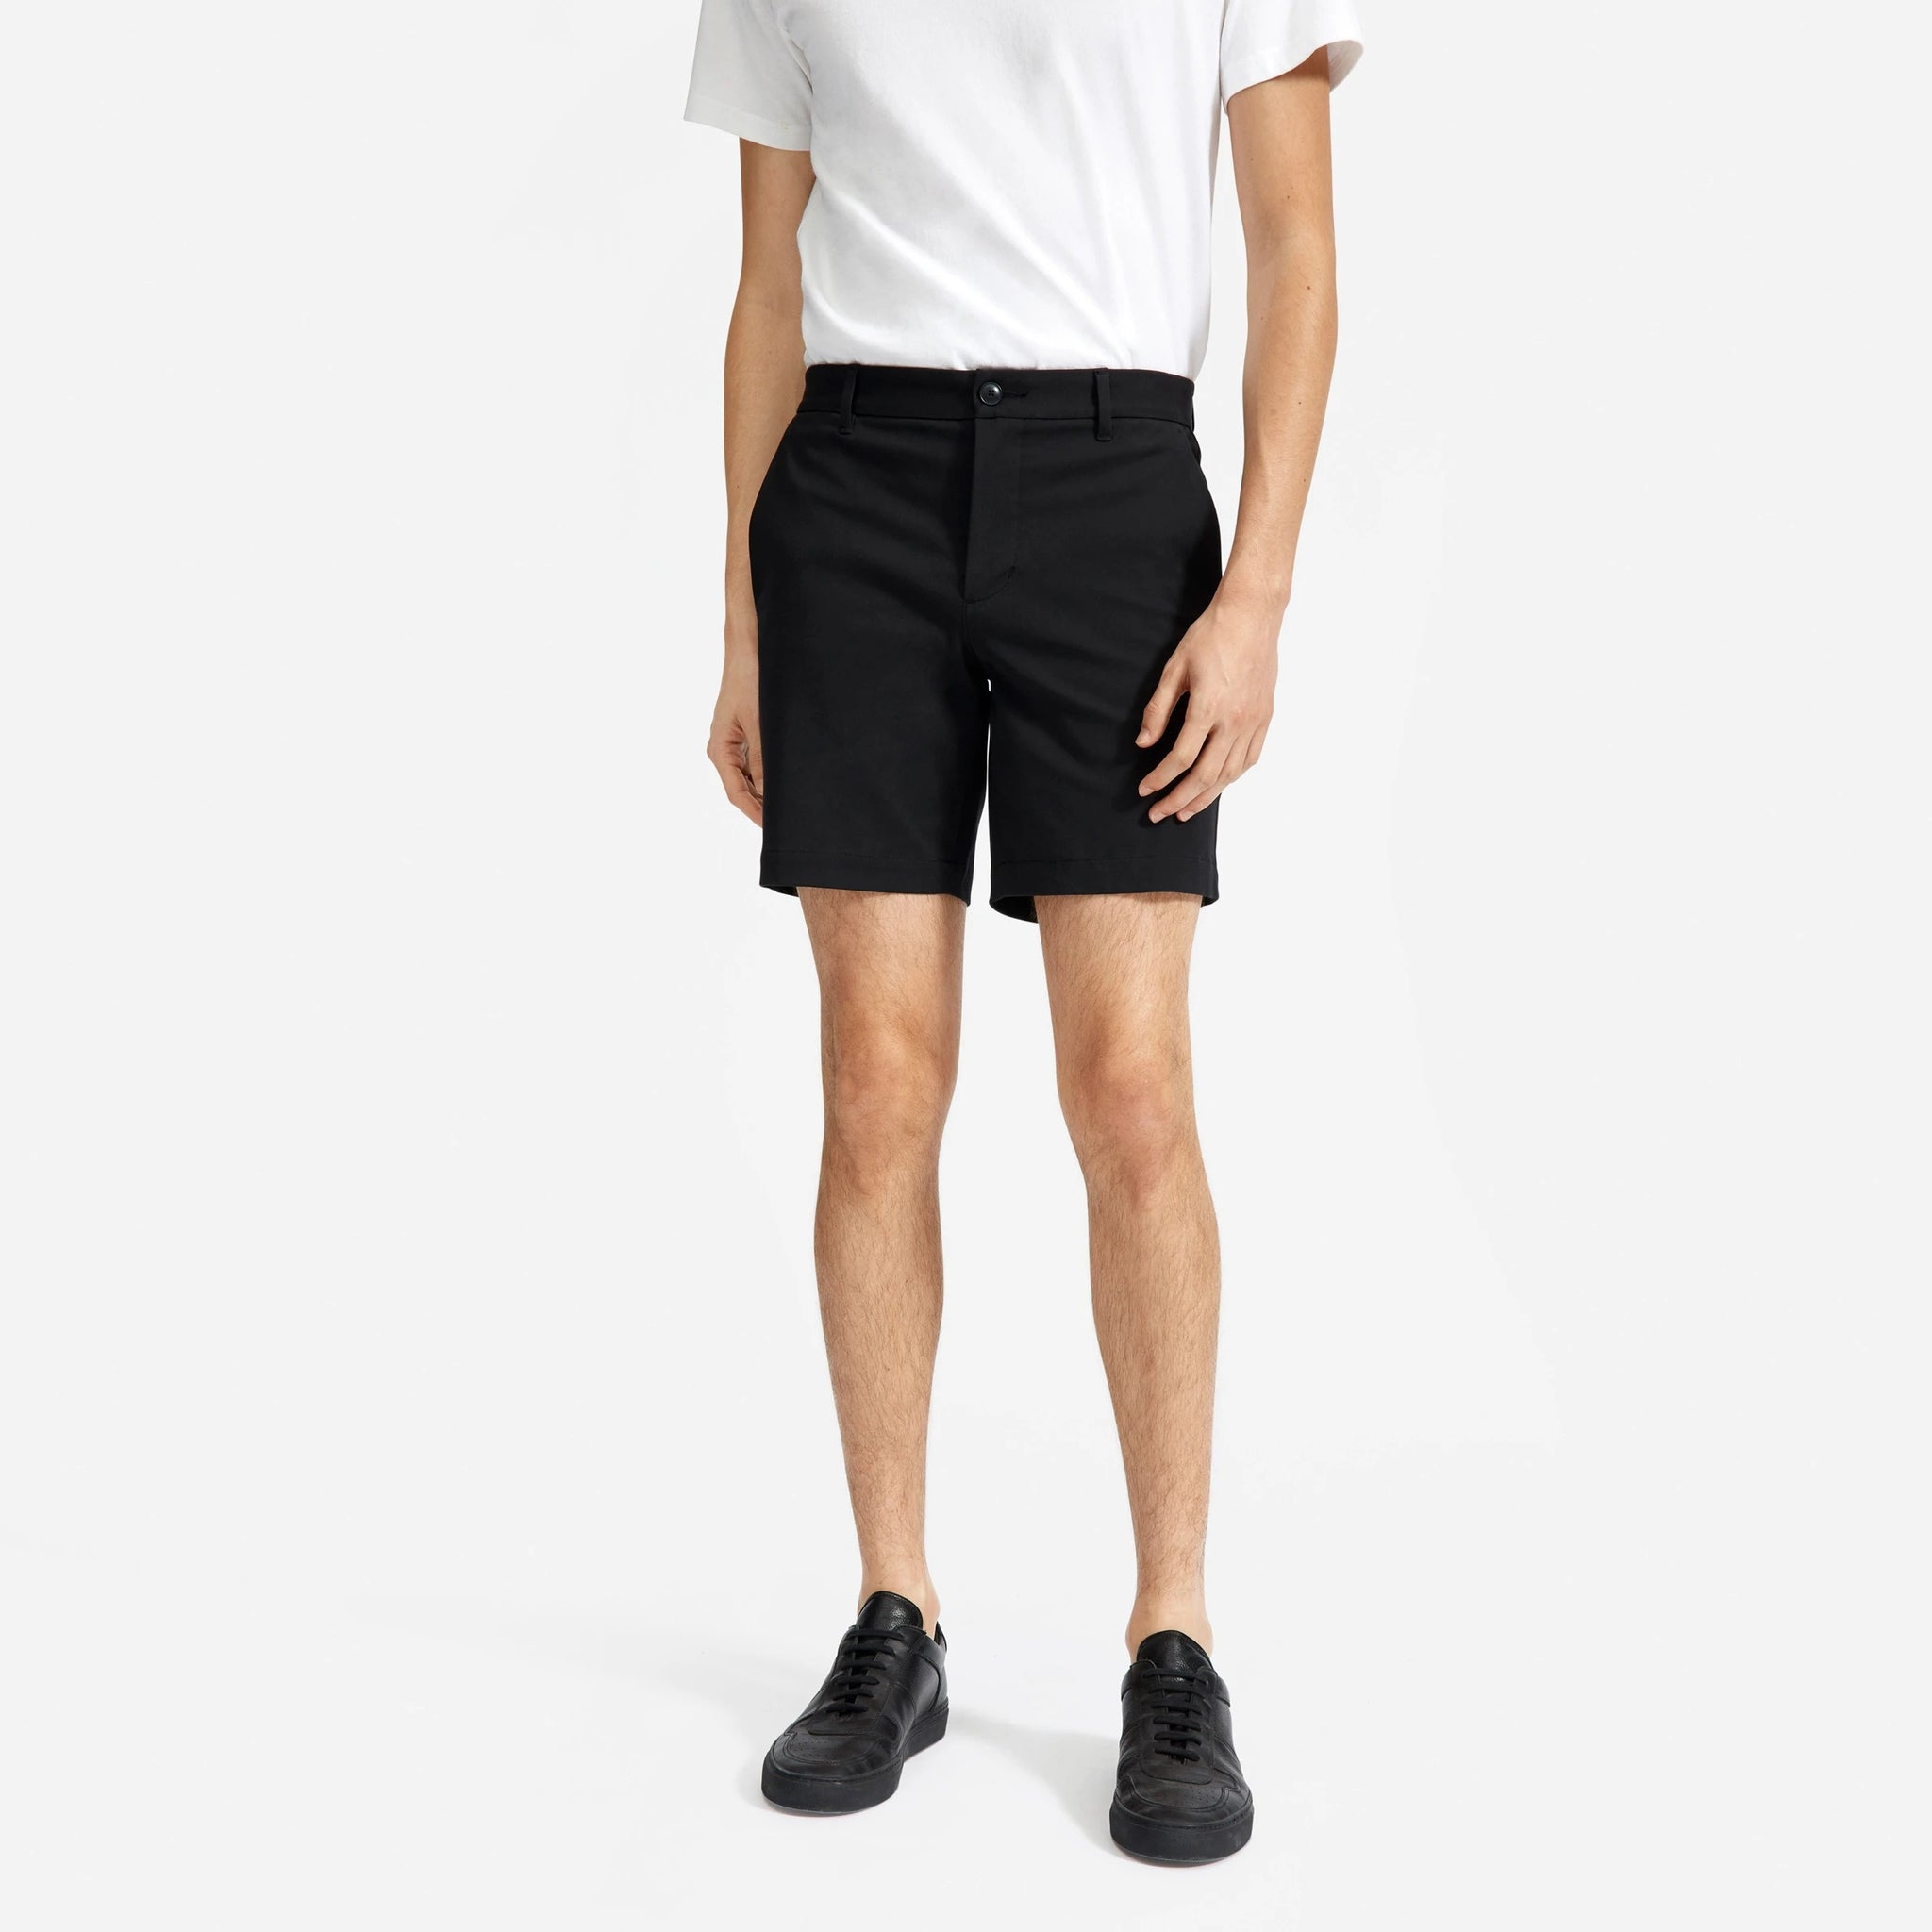 The Best Men's Shorts for Showing Off a Little Leg This Summer